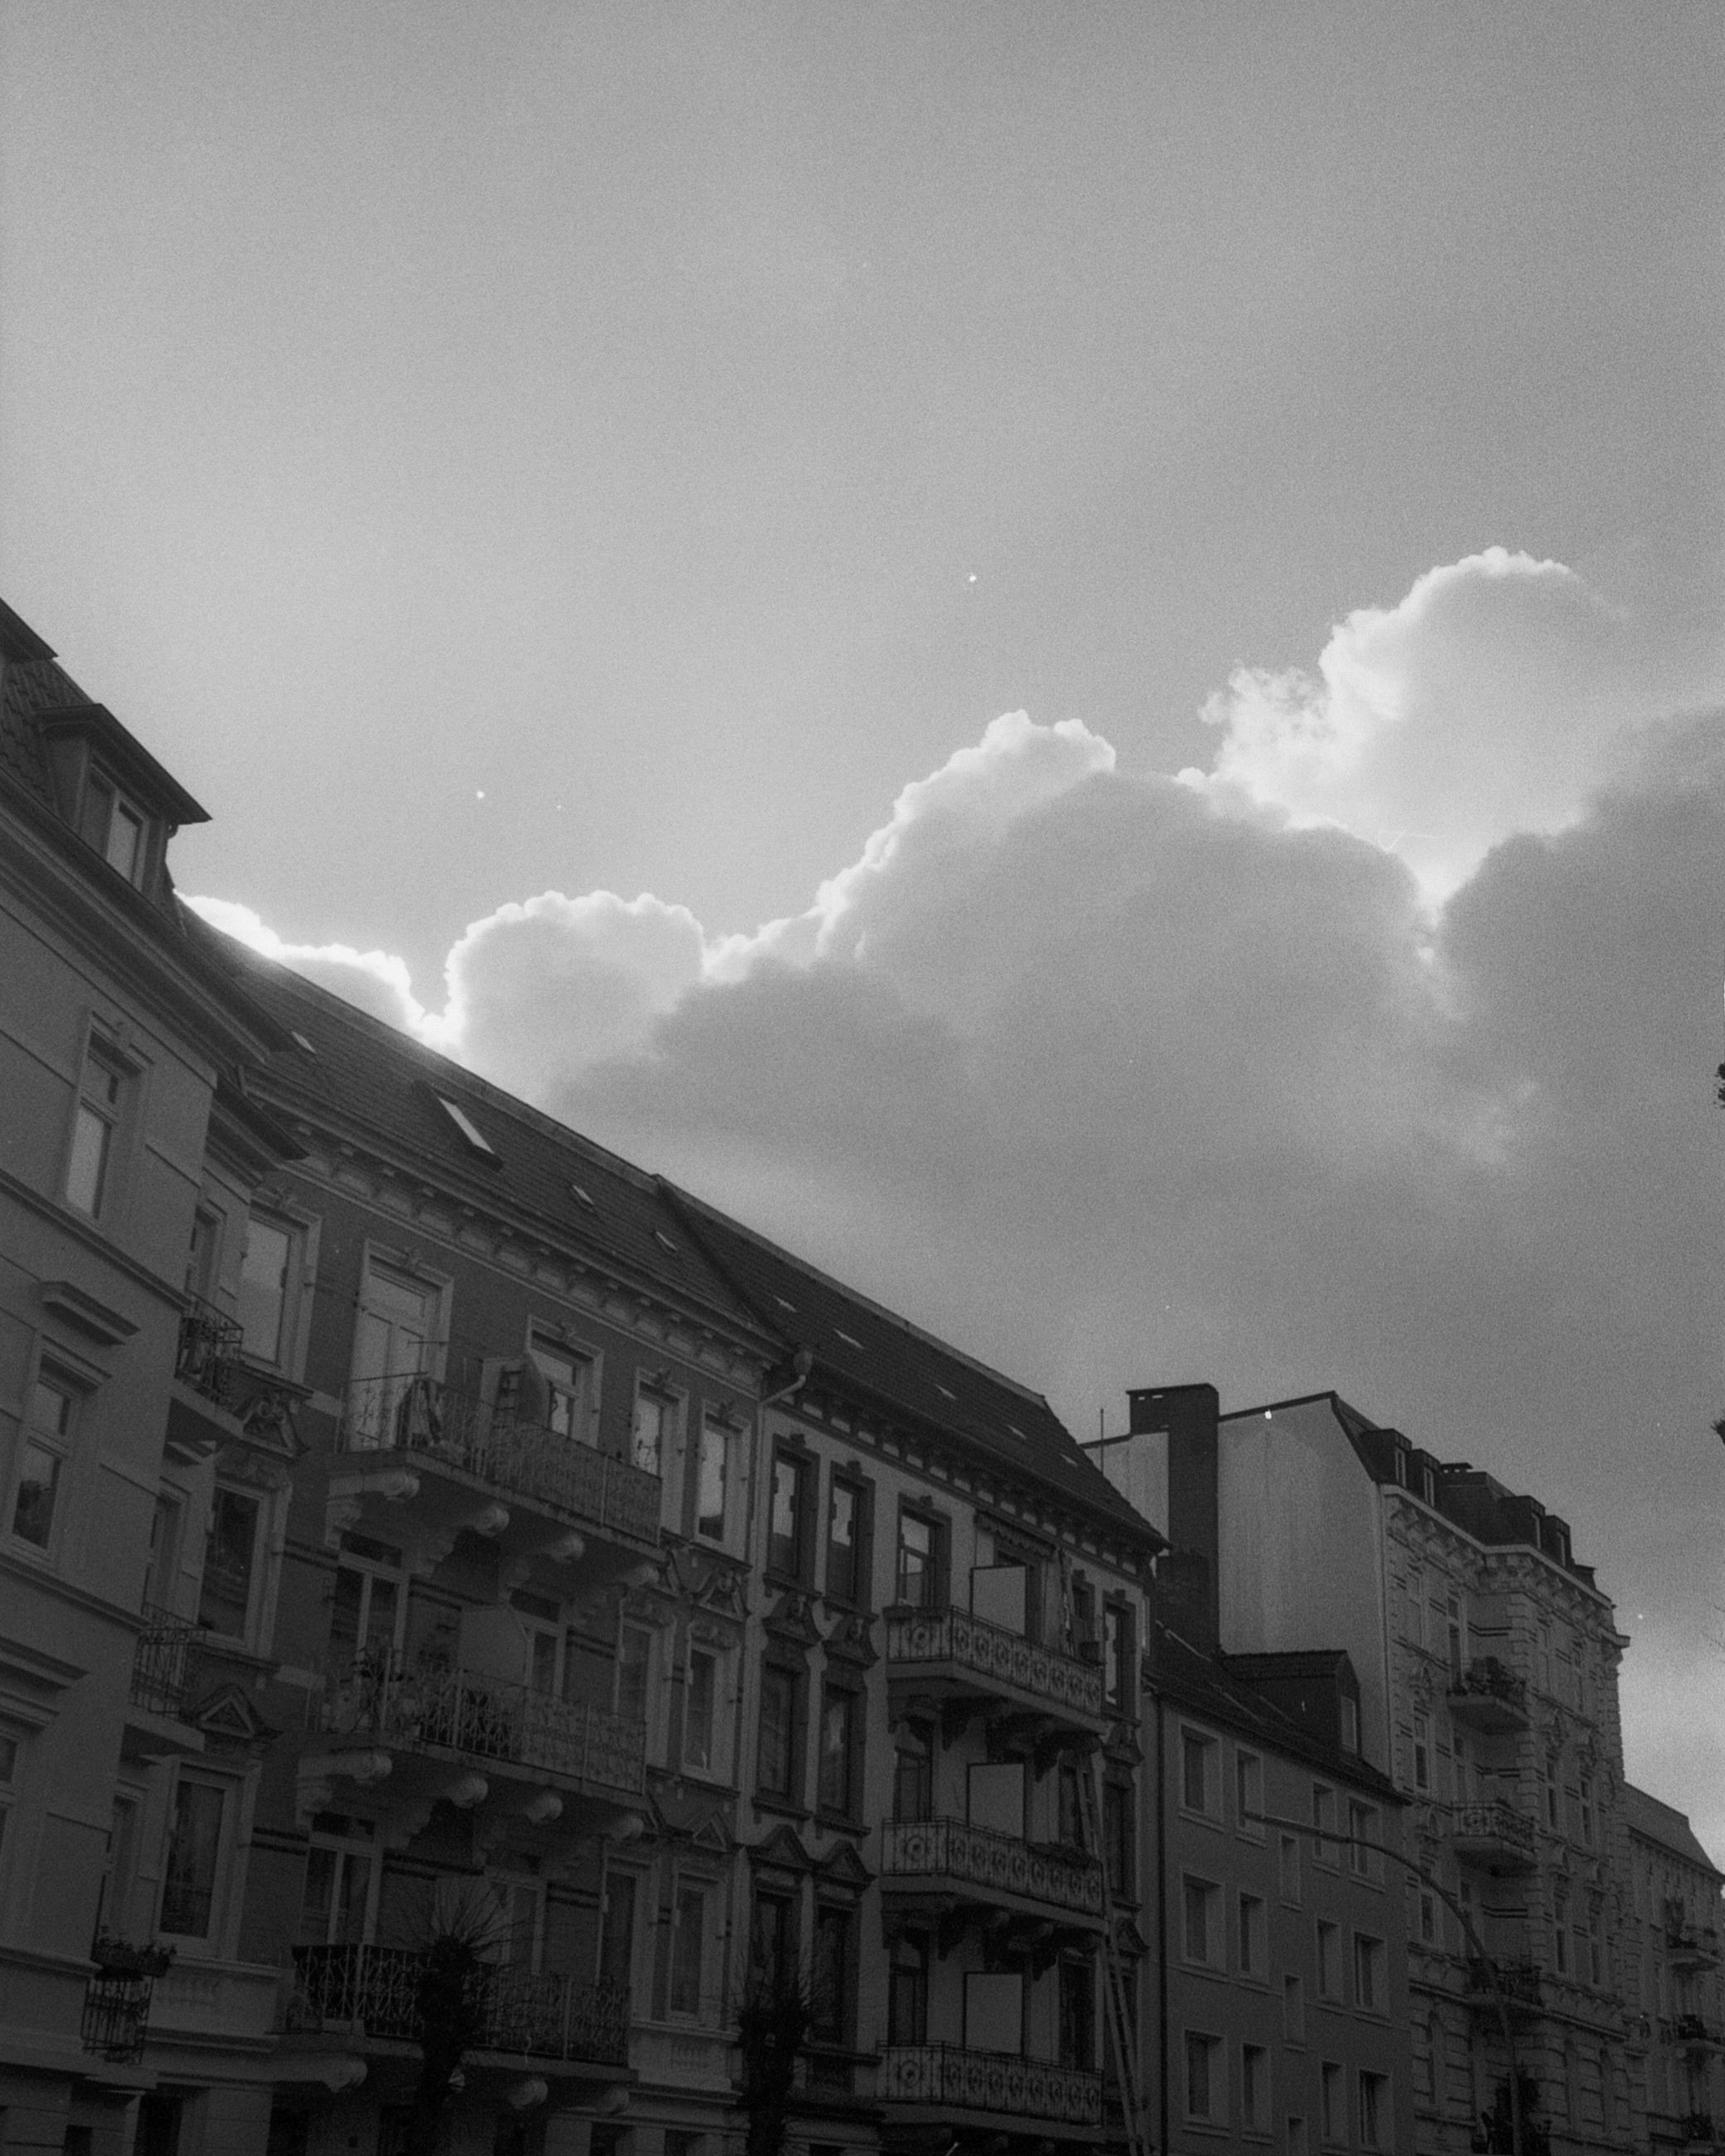 architecture, building exterior, built structure, black and white, sky, monochrome, cloud, city, monochrome photography, building, low angle view, nature, darkness, black, white, no people, residential district, cityscape, house, outdoors